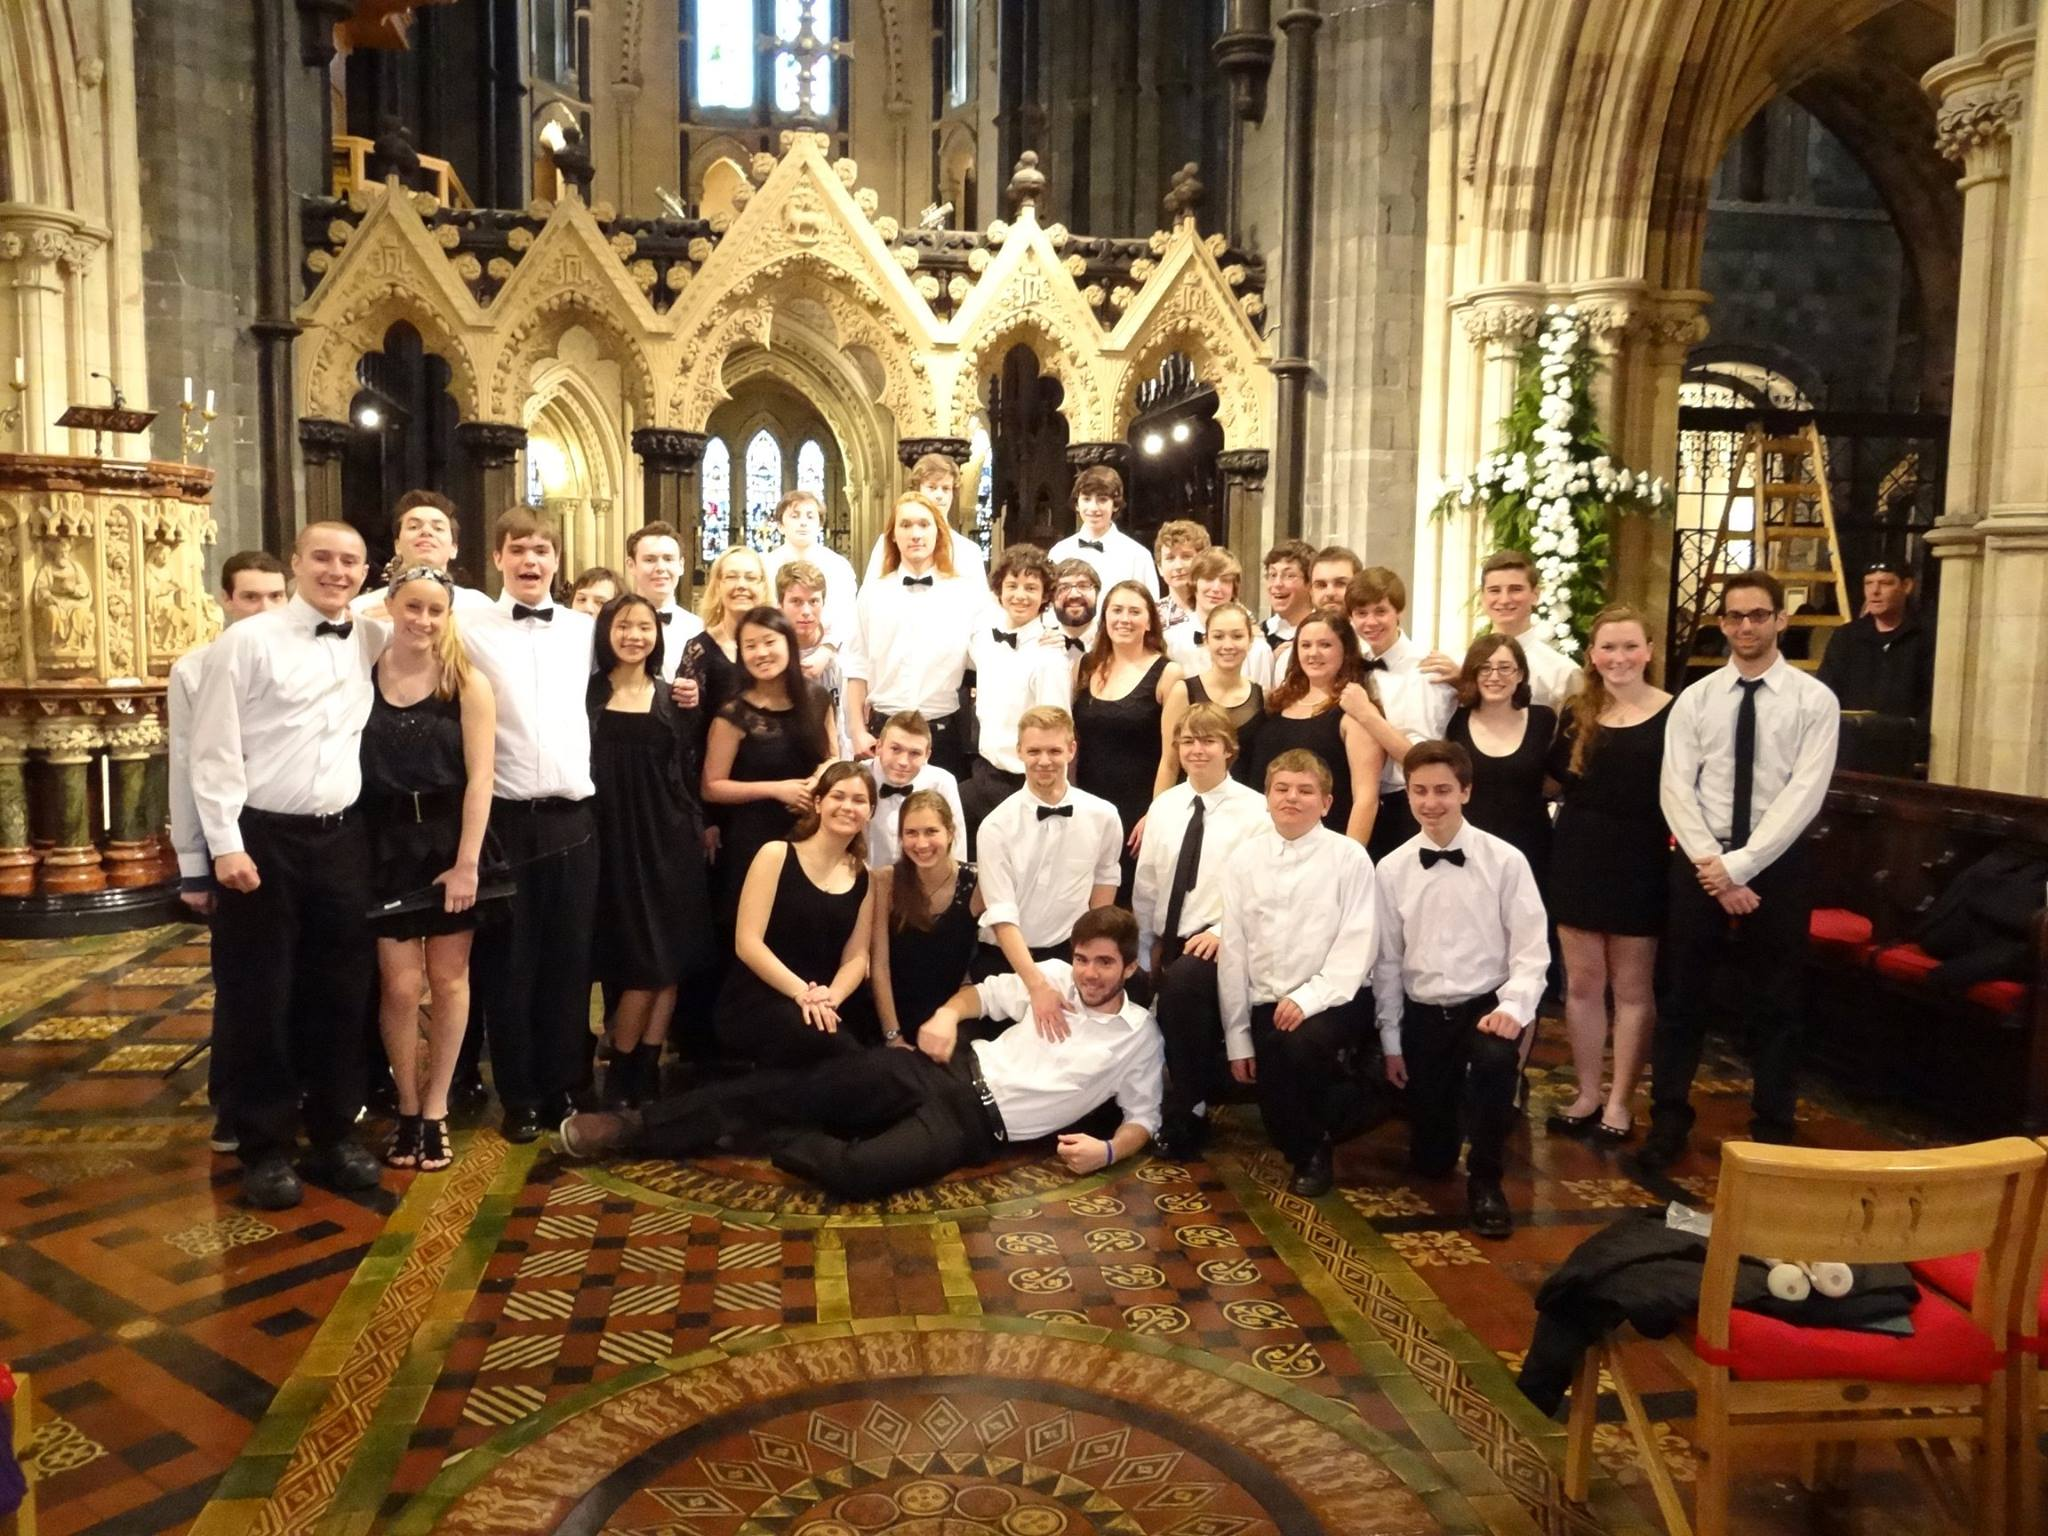 The 2014 Rockport High School Orchestra tour students wearing formal attire and posing for a group photo in Christ Church Cathedral, Dublin